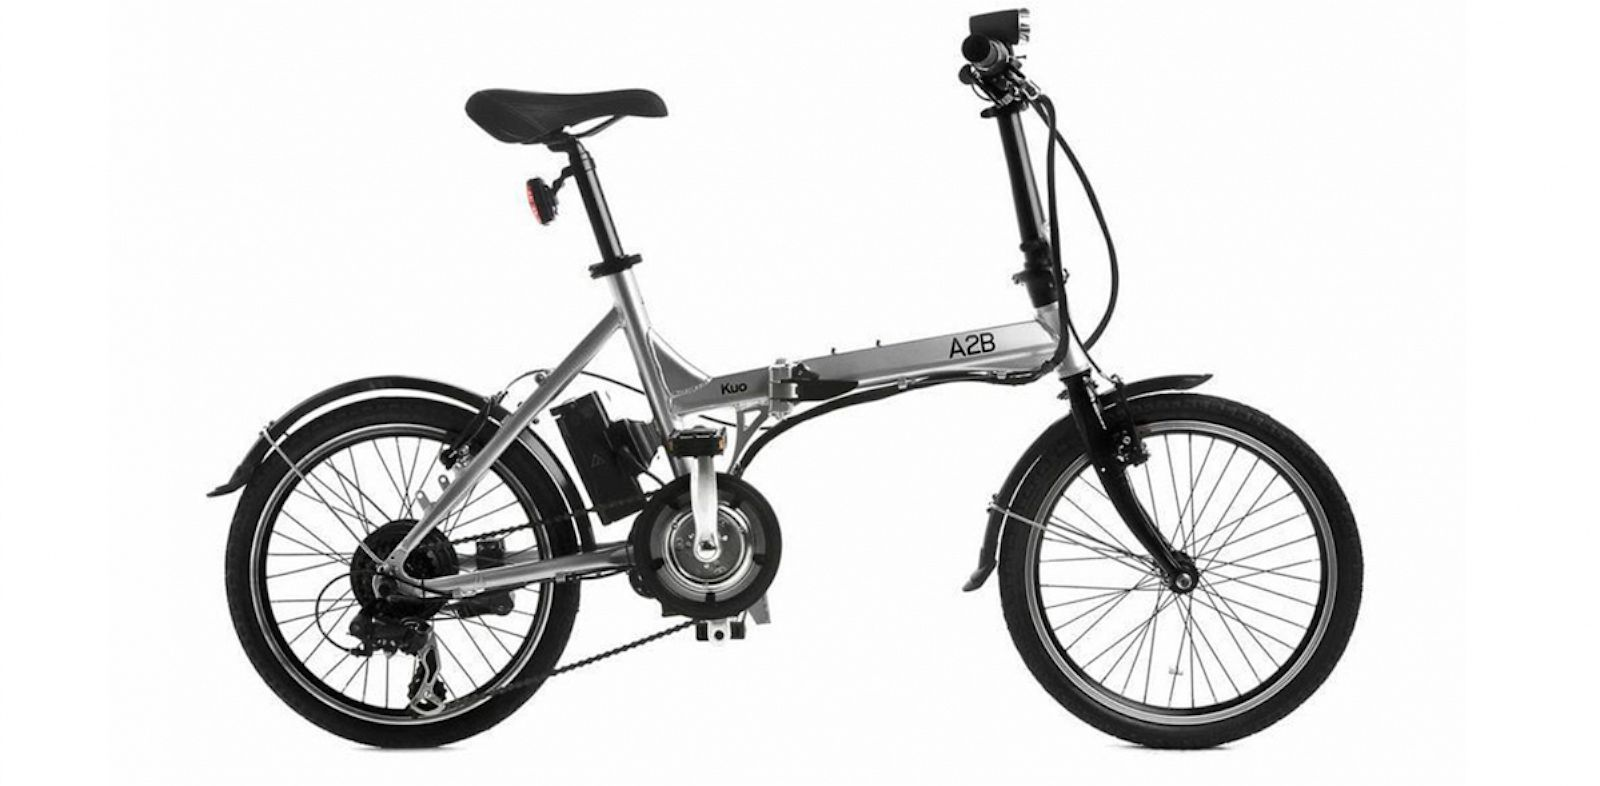 Review A2b Kuo Electric Bike